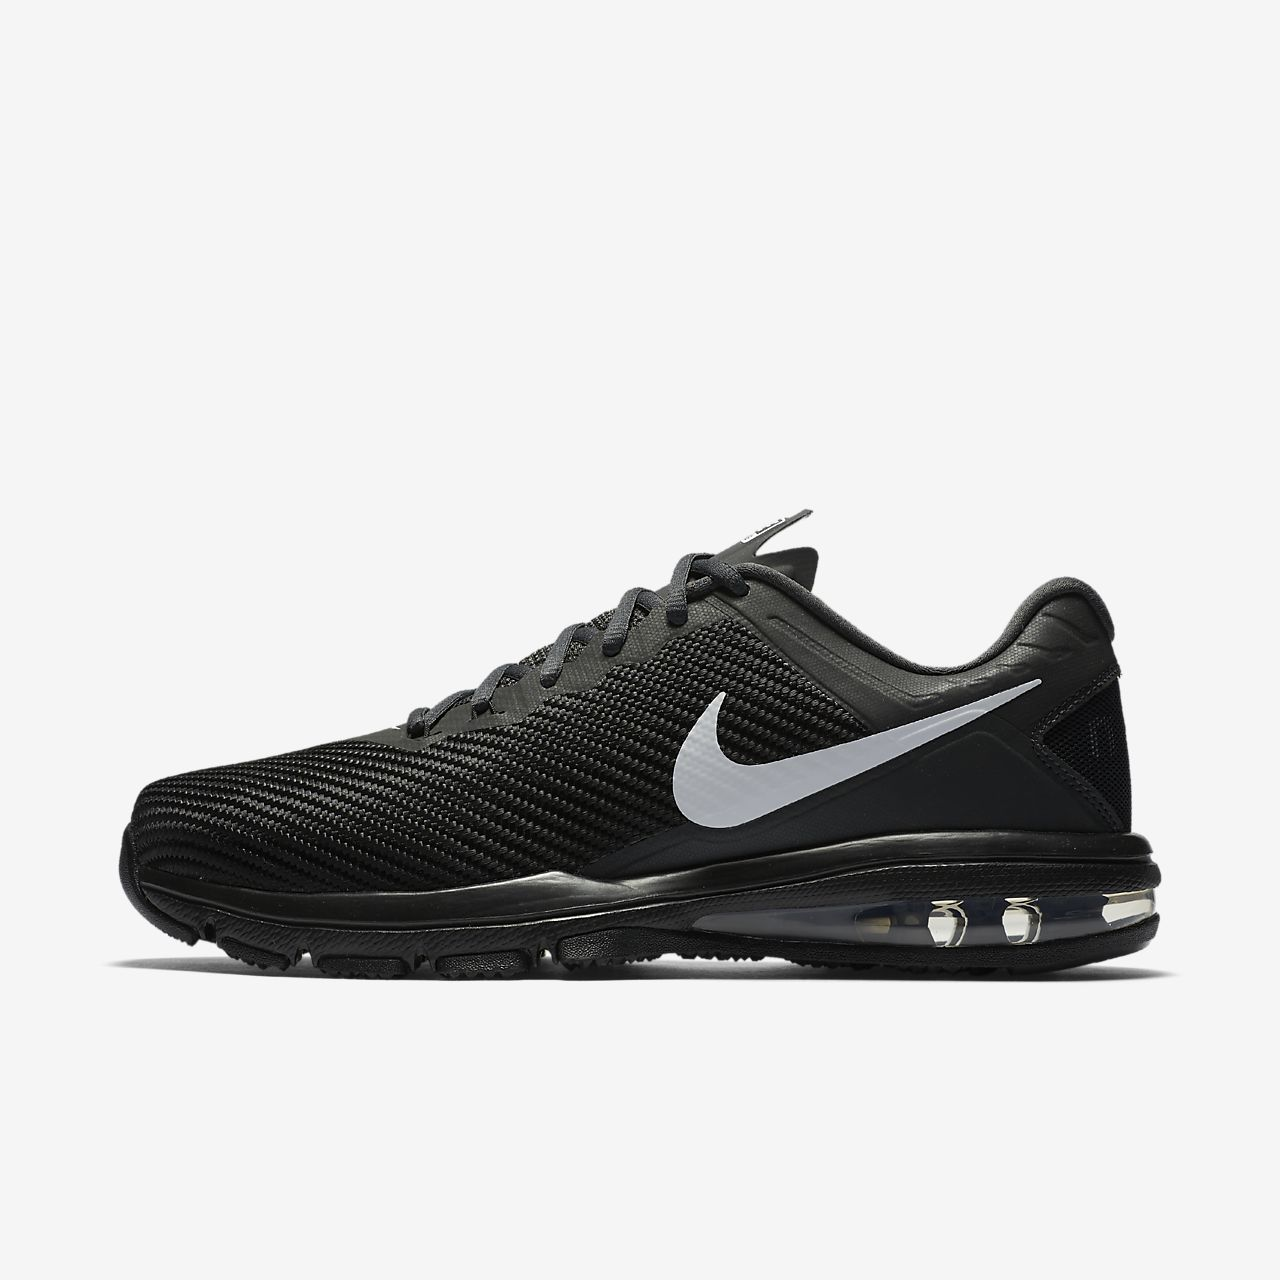 on sale 2e937 18c6f ... Chaussure de training Nike Air Max Full Ride TR 1.5 pour Homme